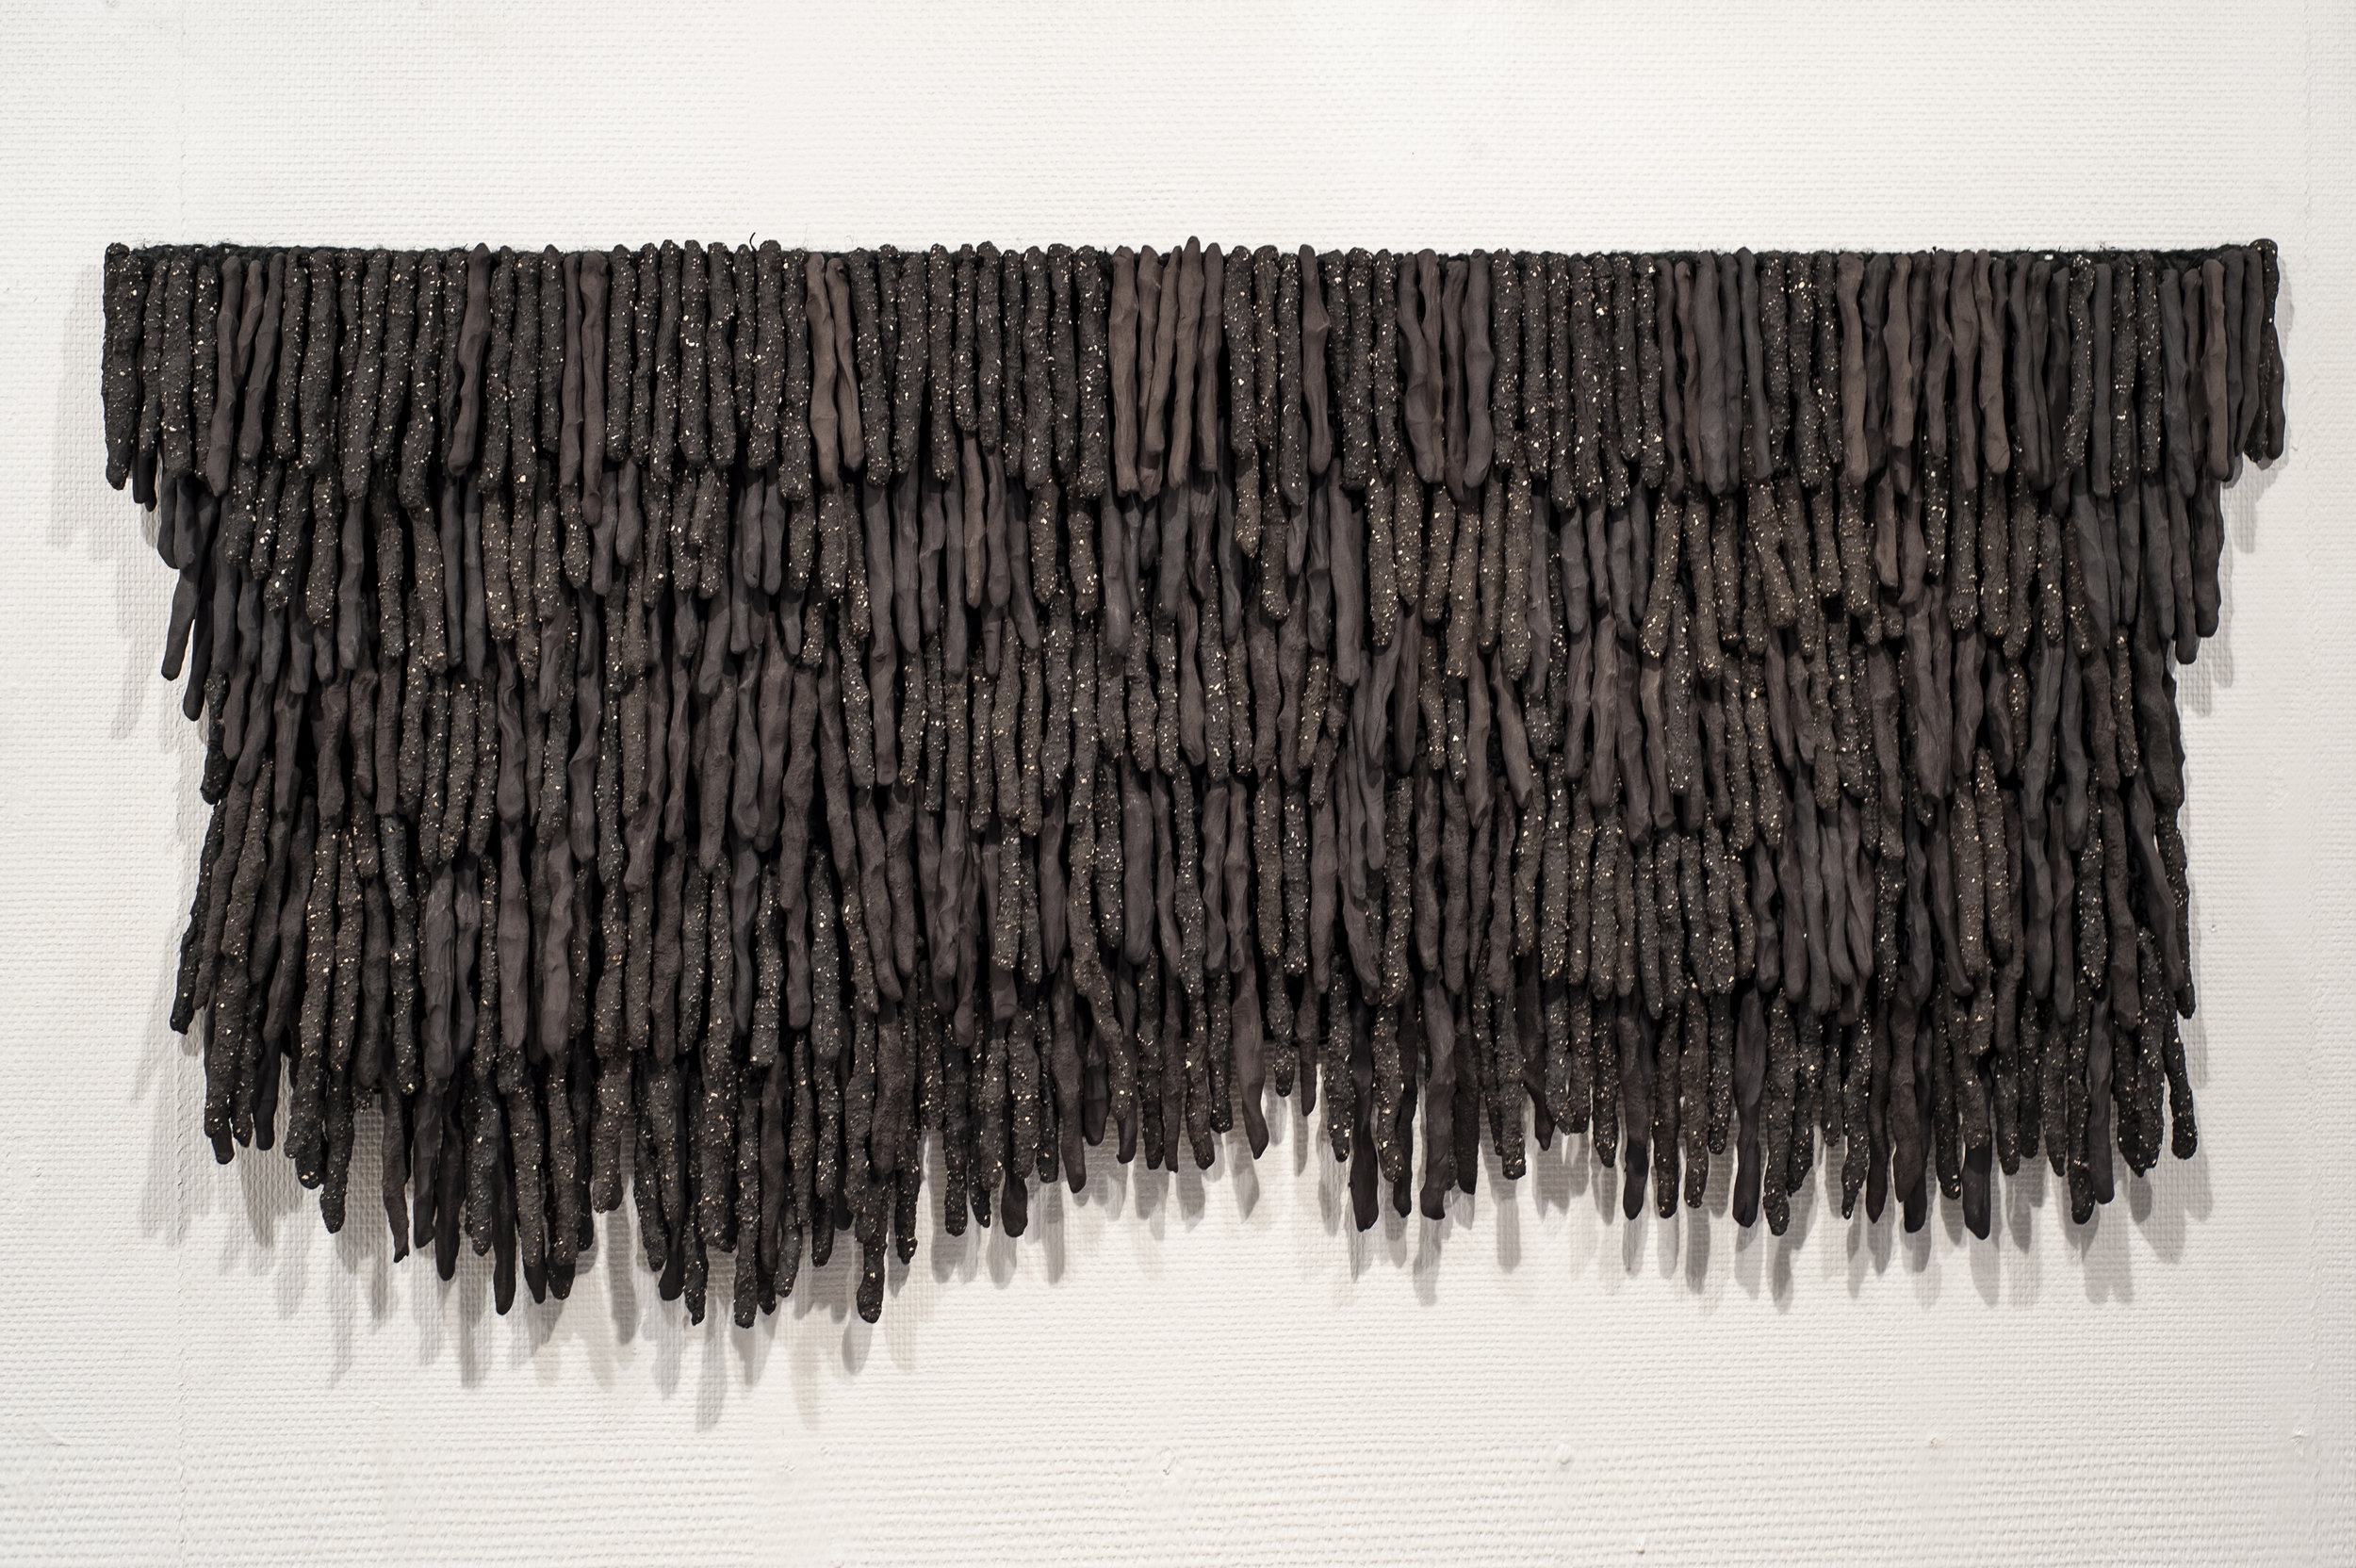 Ekre , 2018 | Ceramic tapestry, hemp, steel and unglazed stoneware.  Photo credit: Courtesy of Galleri Format Oslo